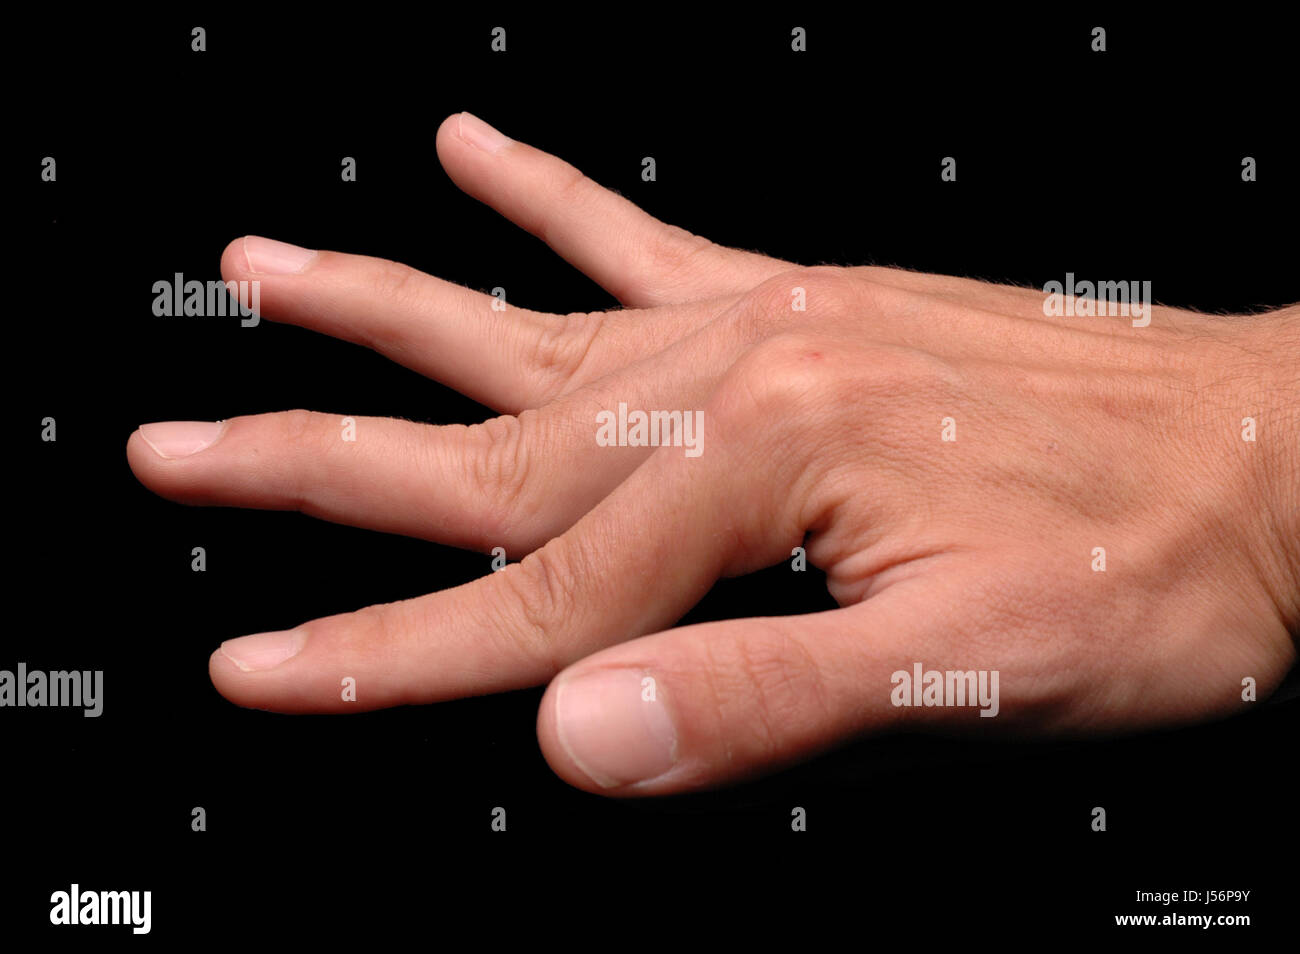 Ehlers Danlos Syndrome Ehlers Danlos Syndrome Stock Photo 140905463 Alamy